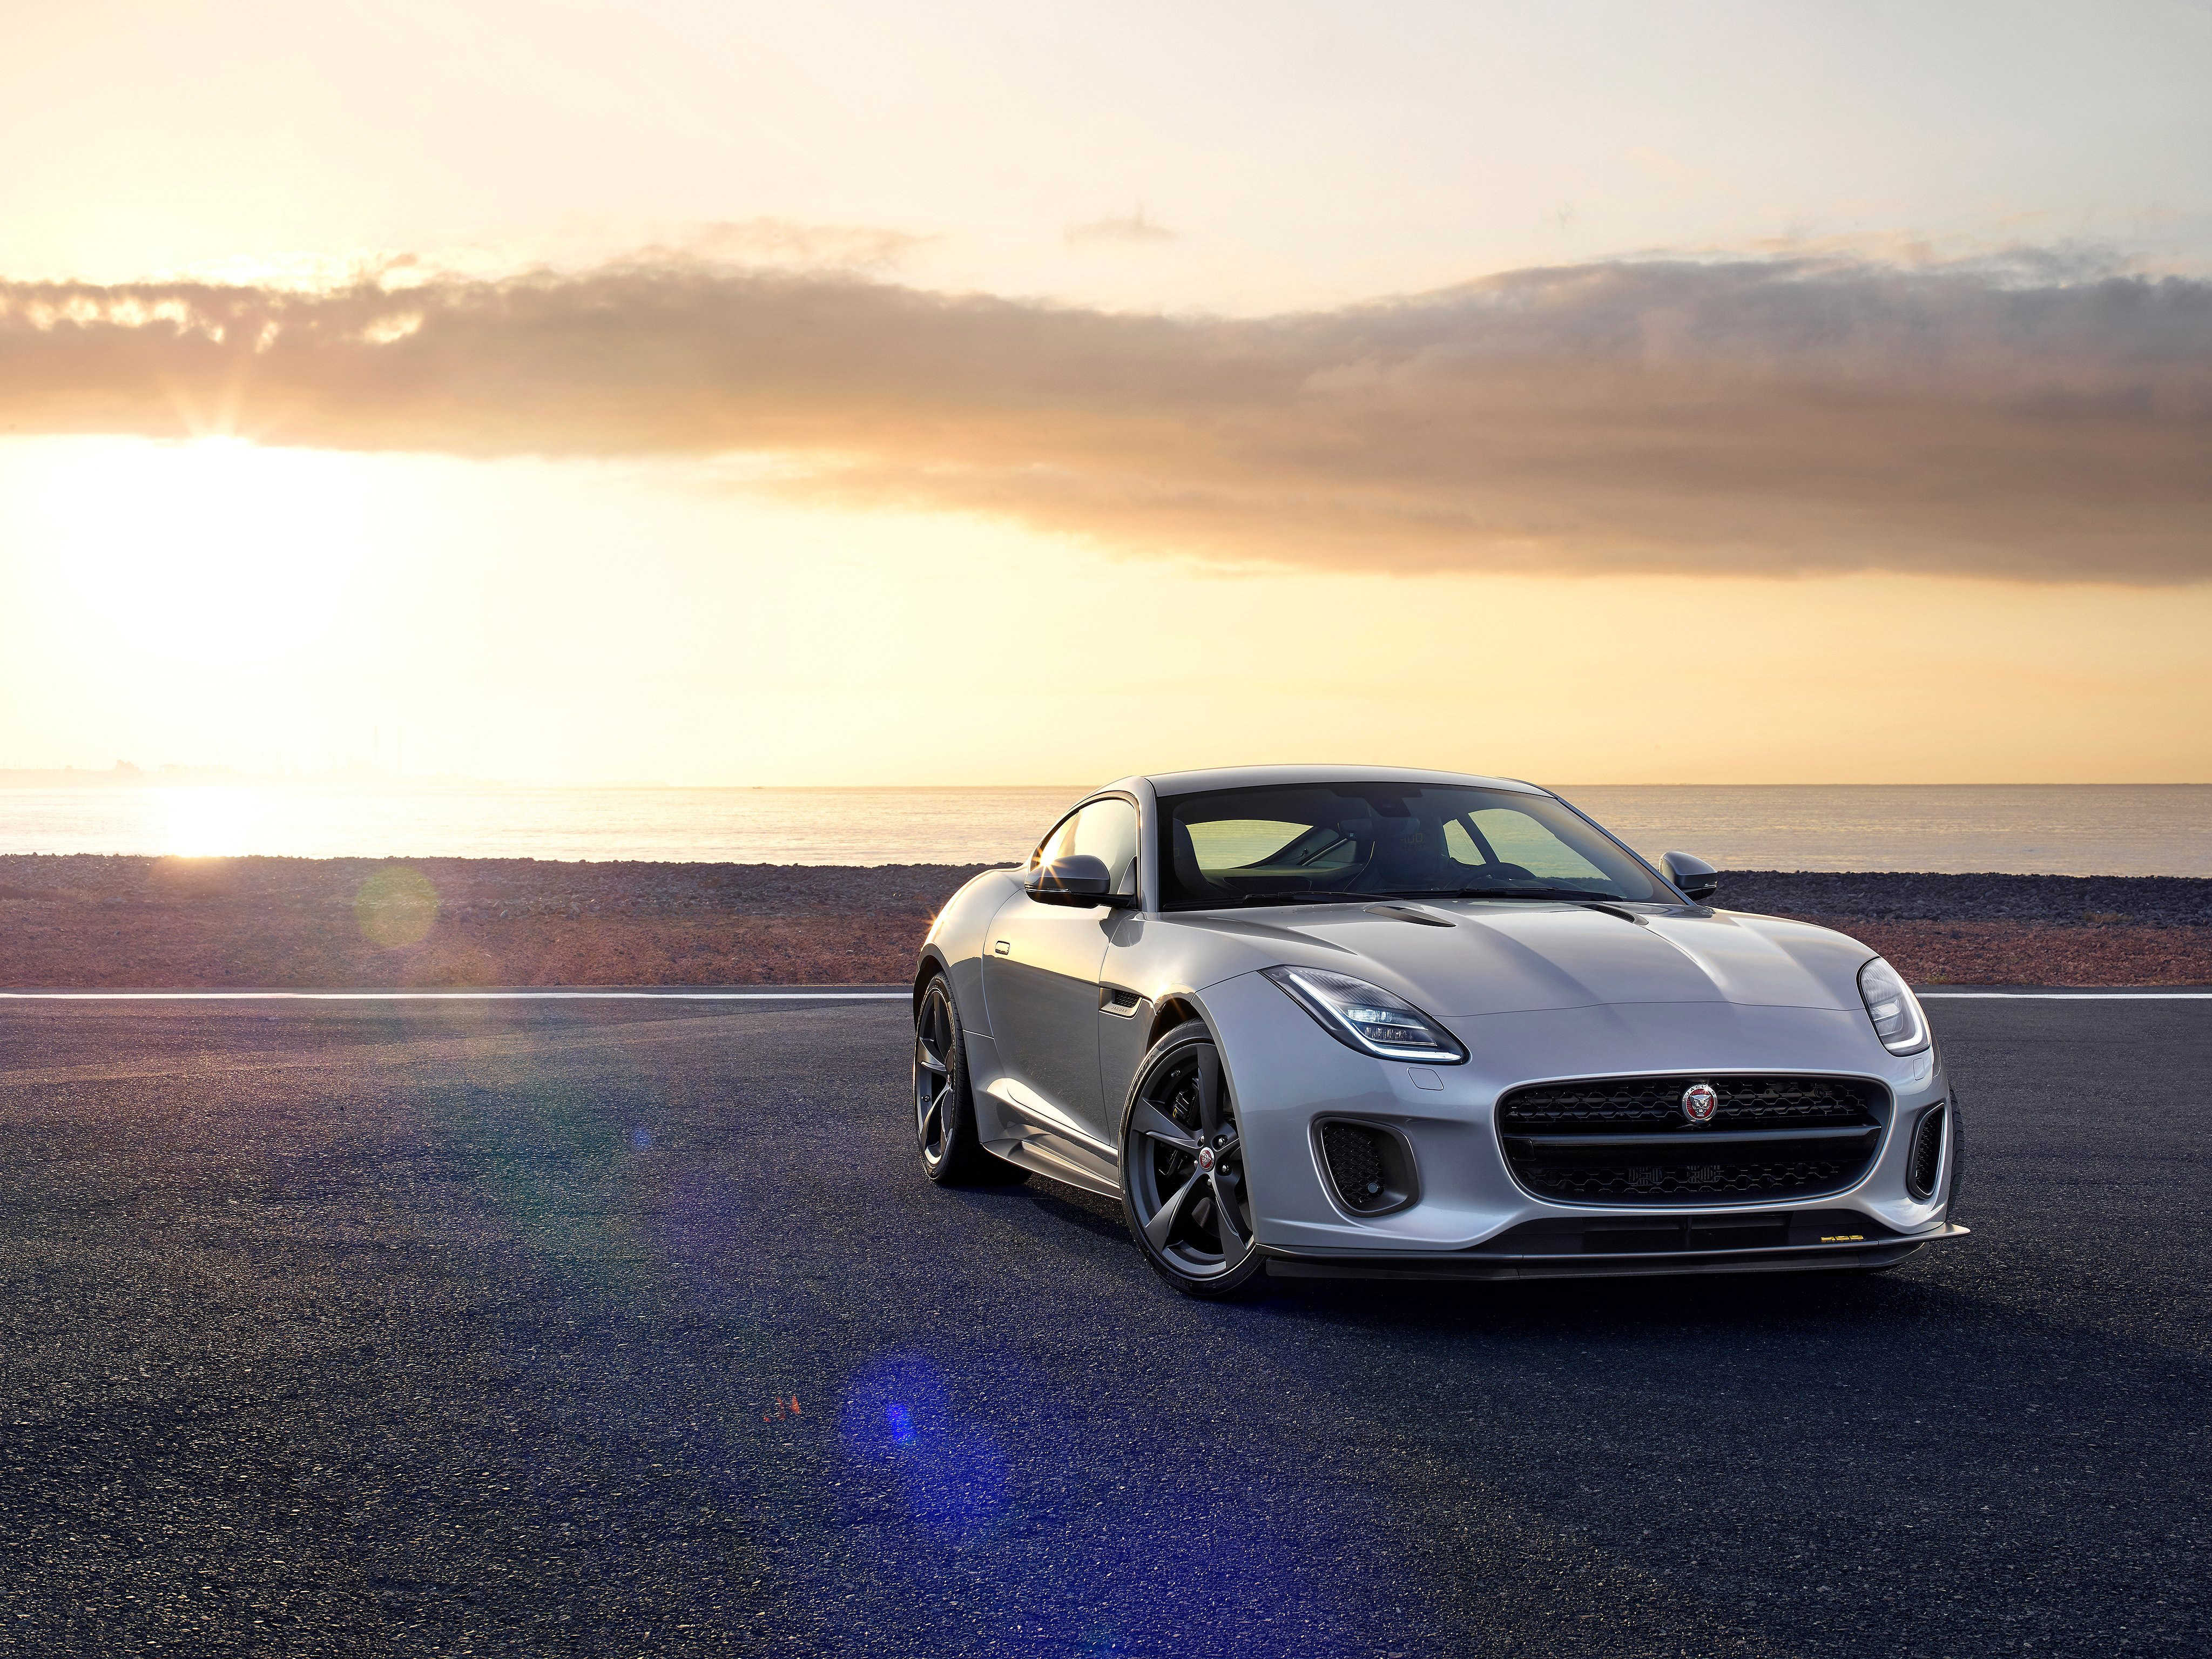 jaguar f type 2018, hd cars, 4k wallpapers, images, backgrounds